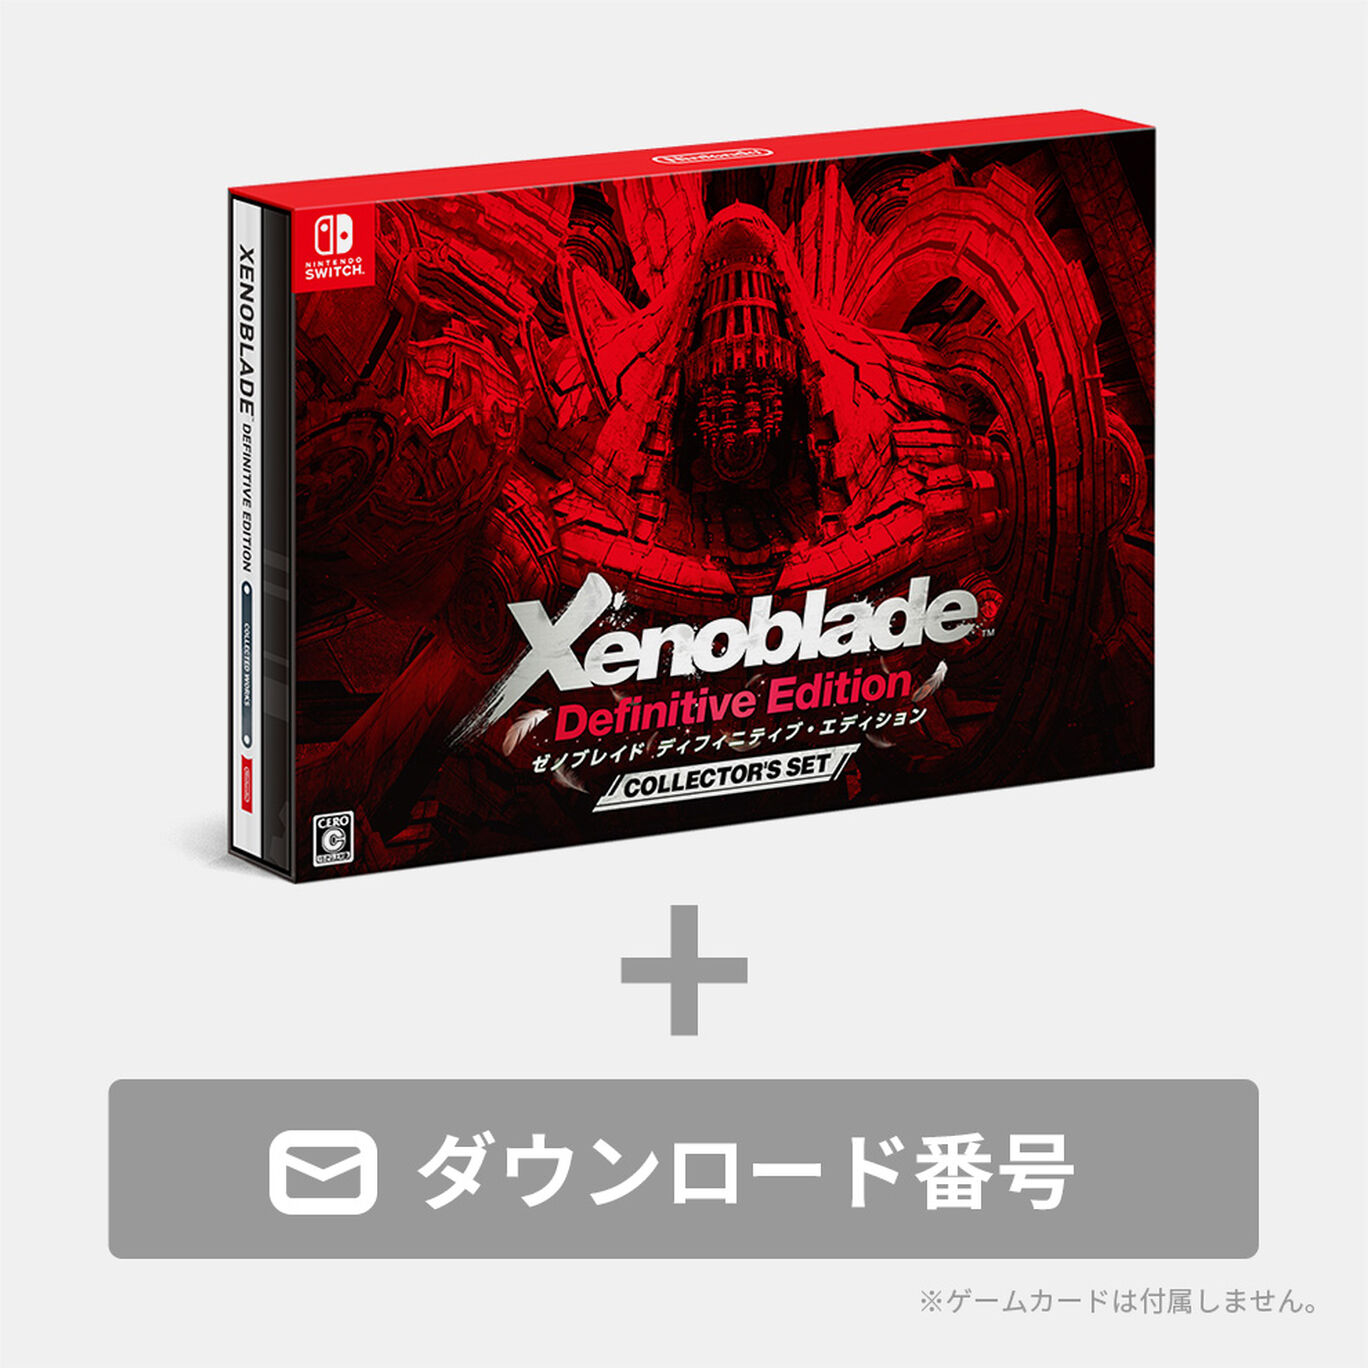 Xenoblade Definitive Edition Collector's Set ダウンロード版(パッケージ付)